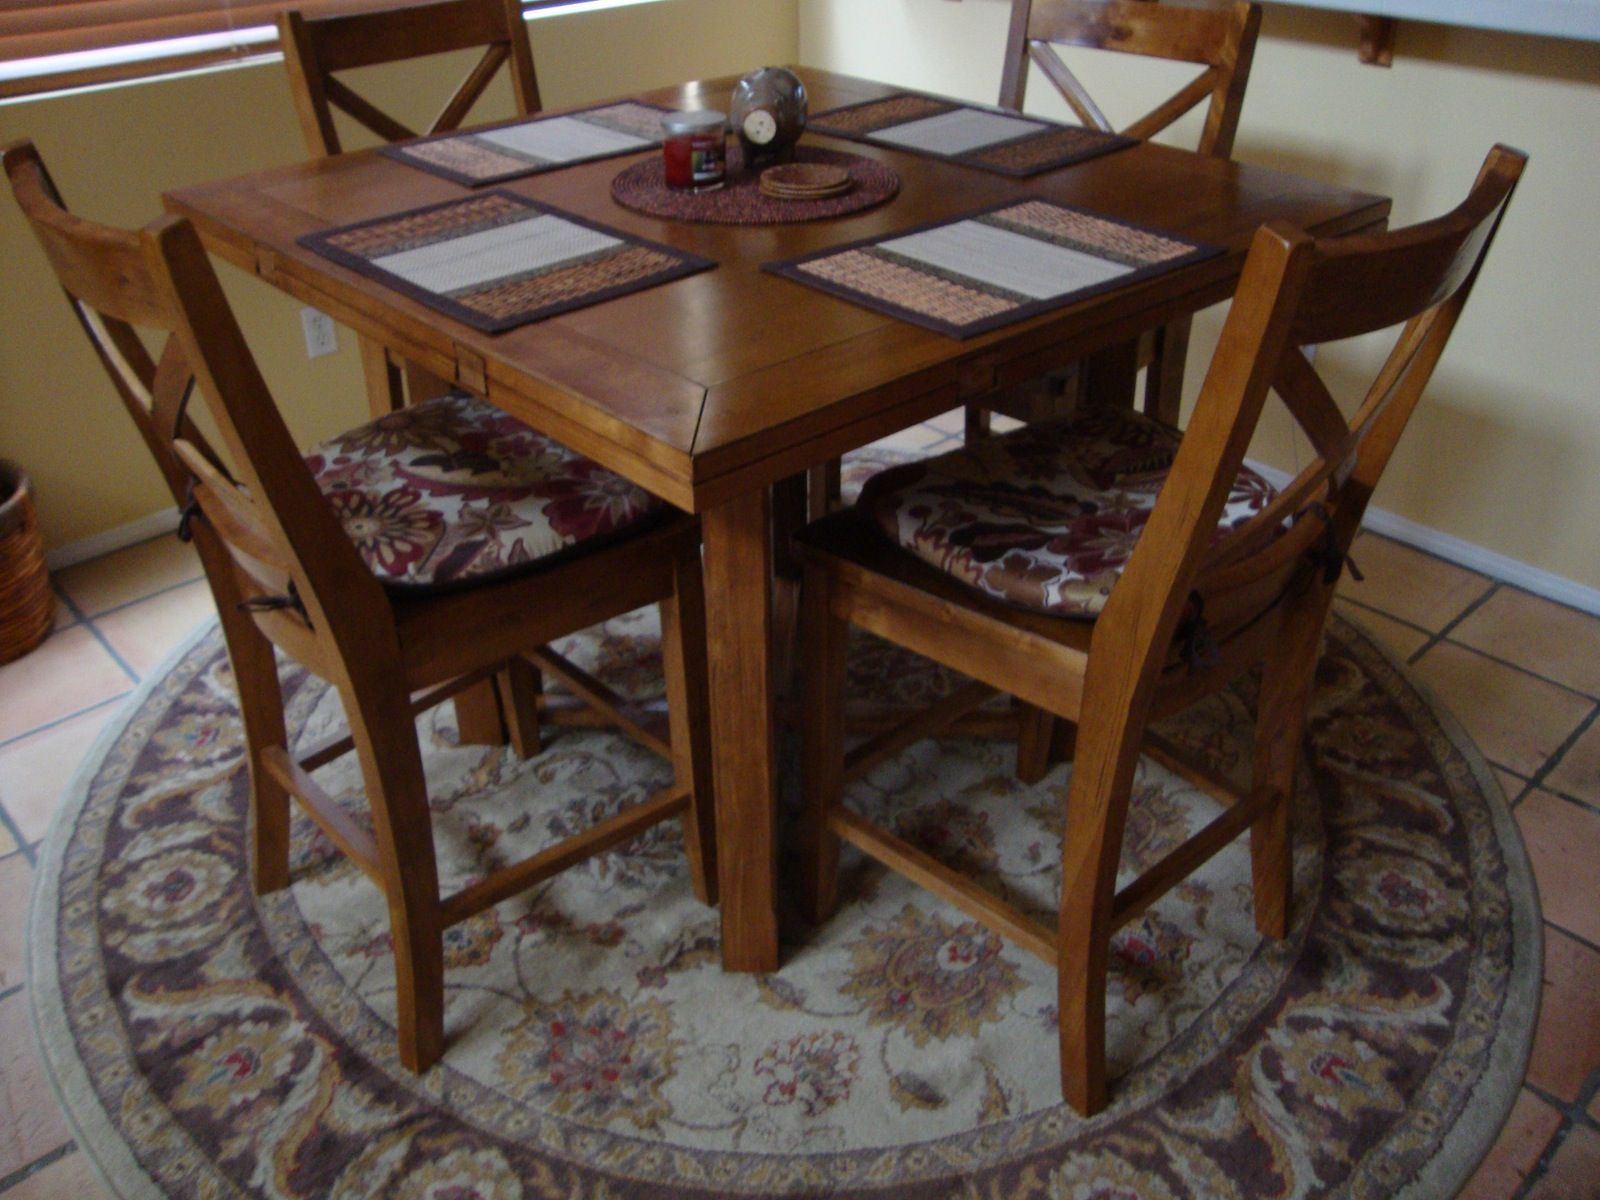 Yes a square table does go well on a round rug round for Dining table rug